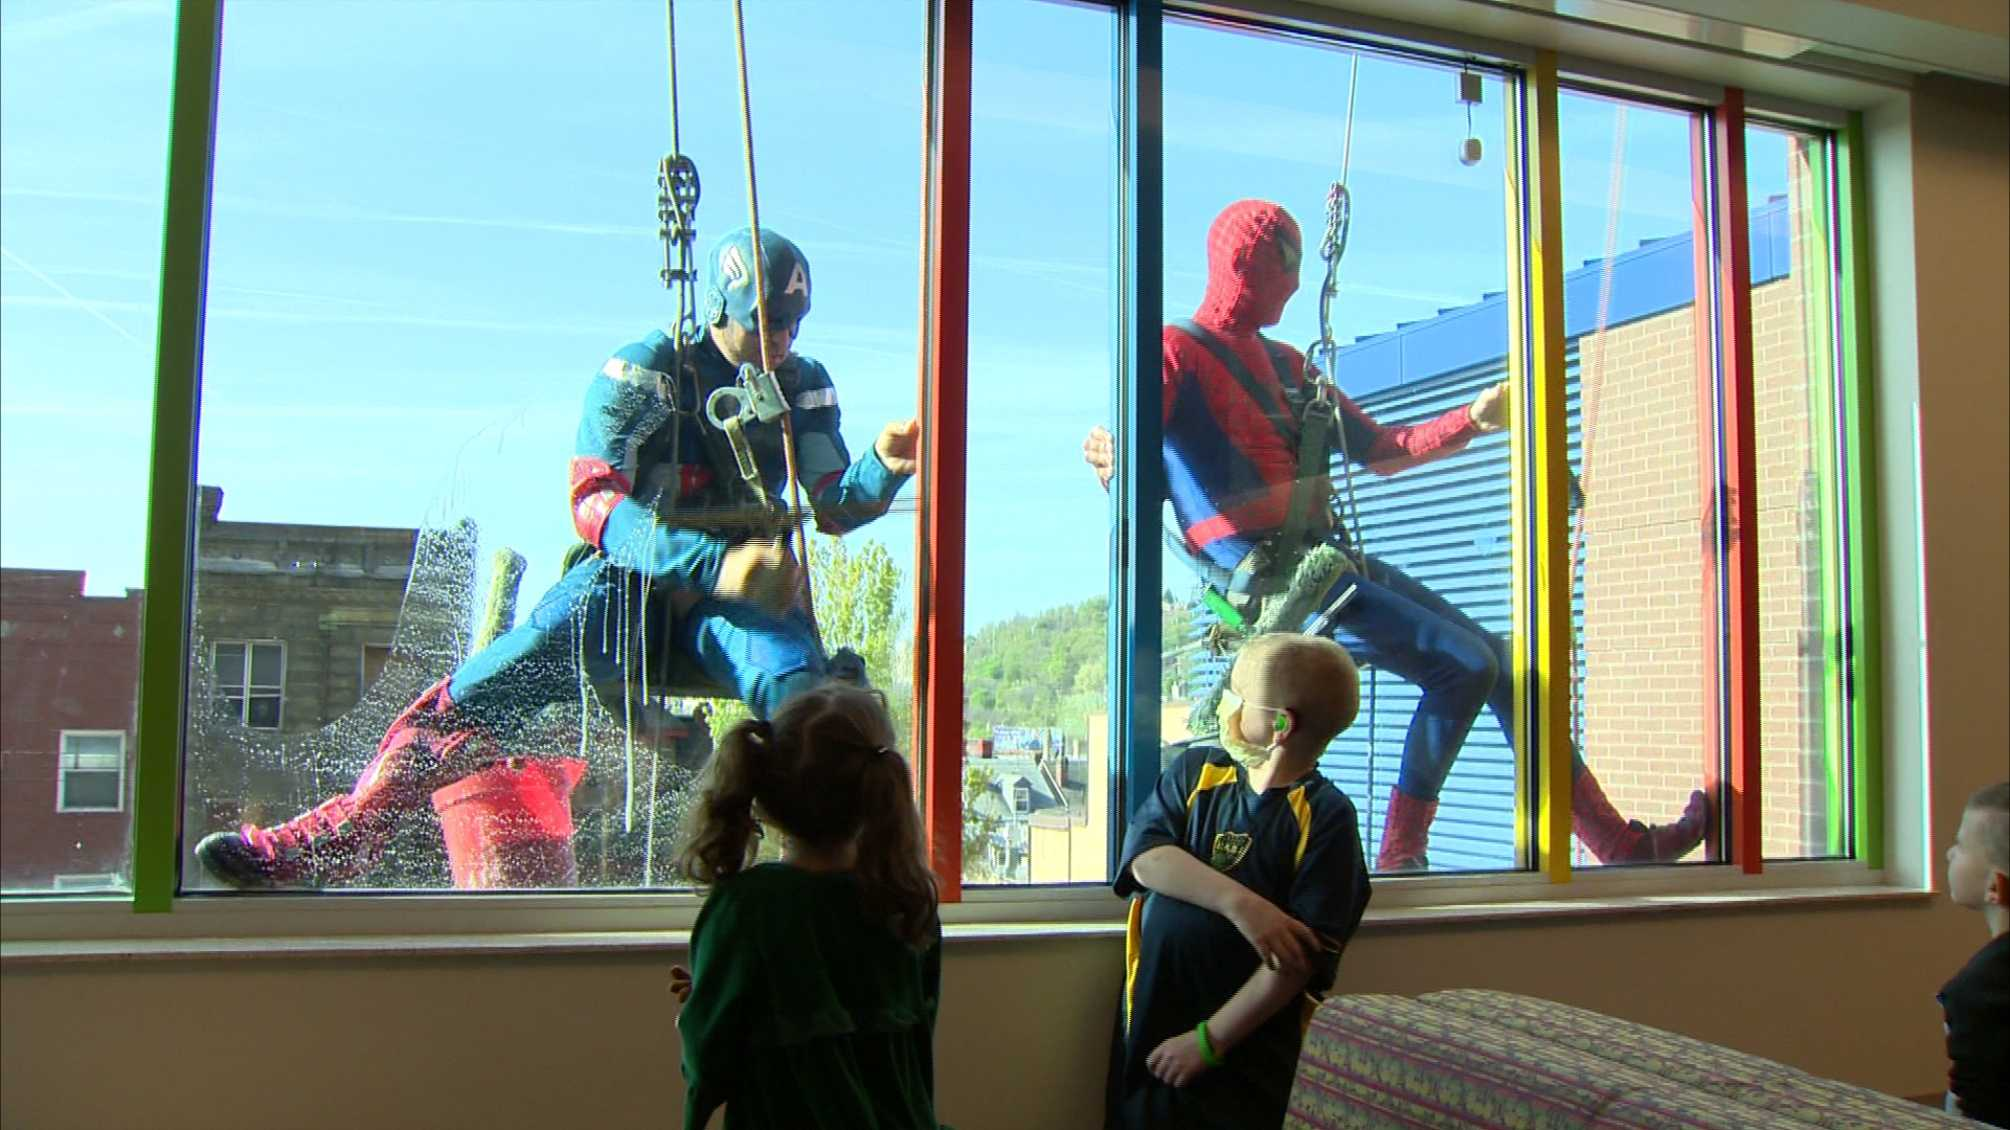 These kids found a great spot to watch the superheroes go to work.